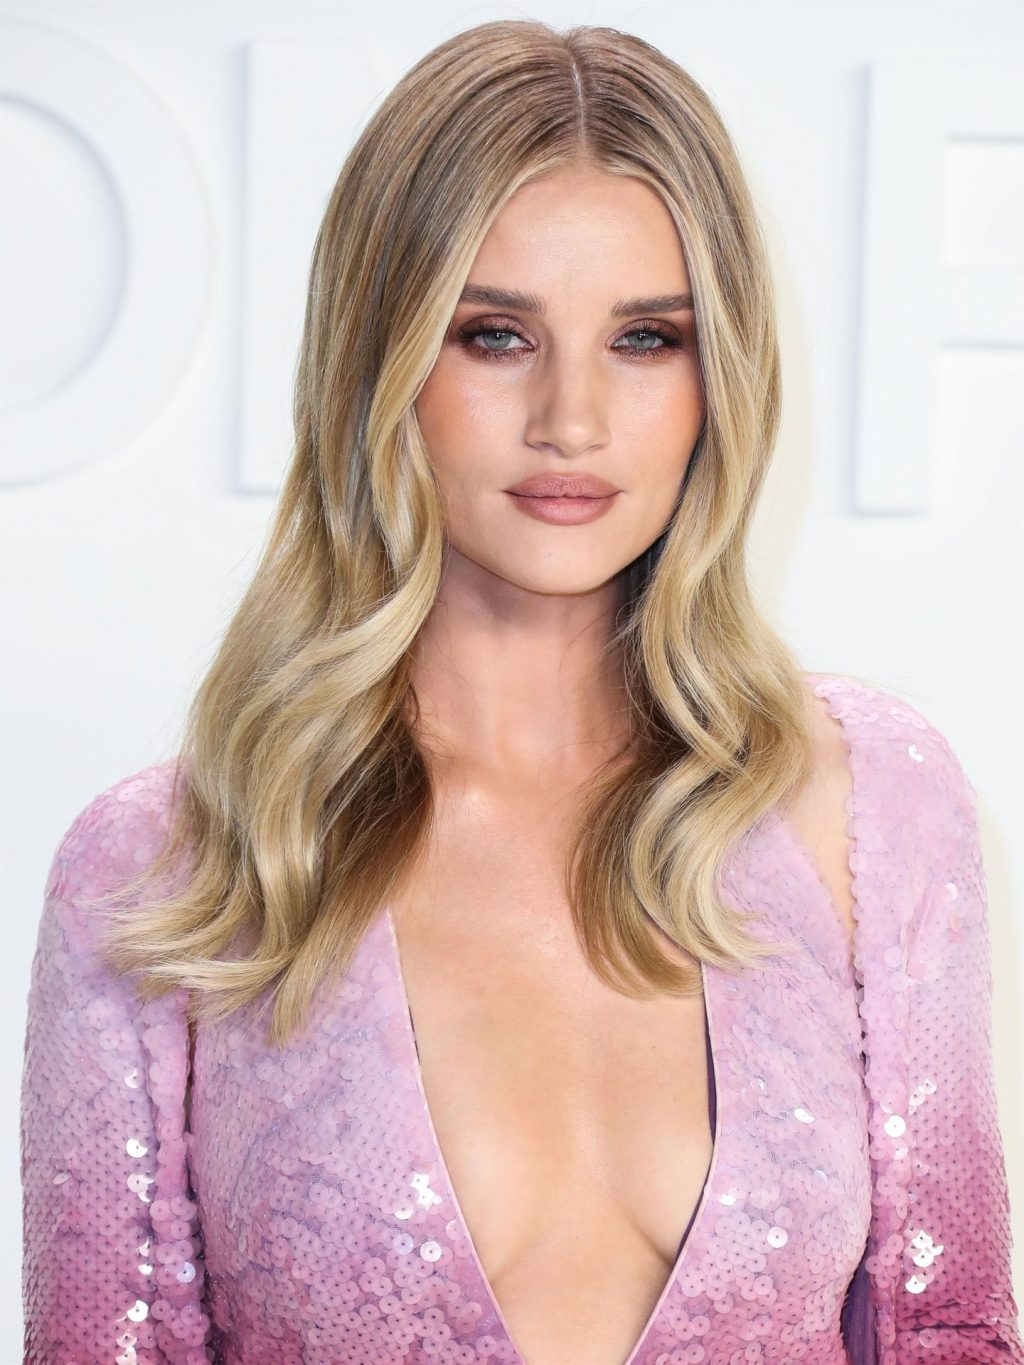 Rosie Huntington Whiteley Sexy The Fappening Blog 52 1024x1365 - Rosie Huntington-Whiteley Shows Her Cleavage at the Tom Ford Fashion Show (115 Photos)